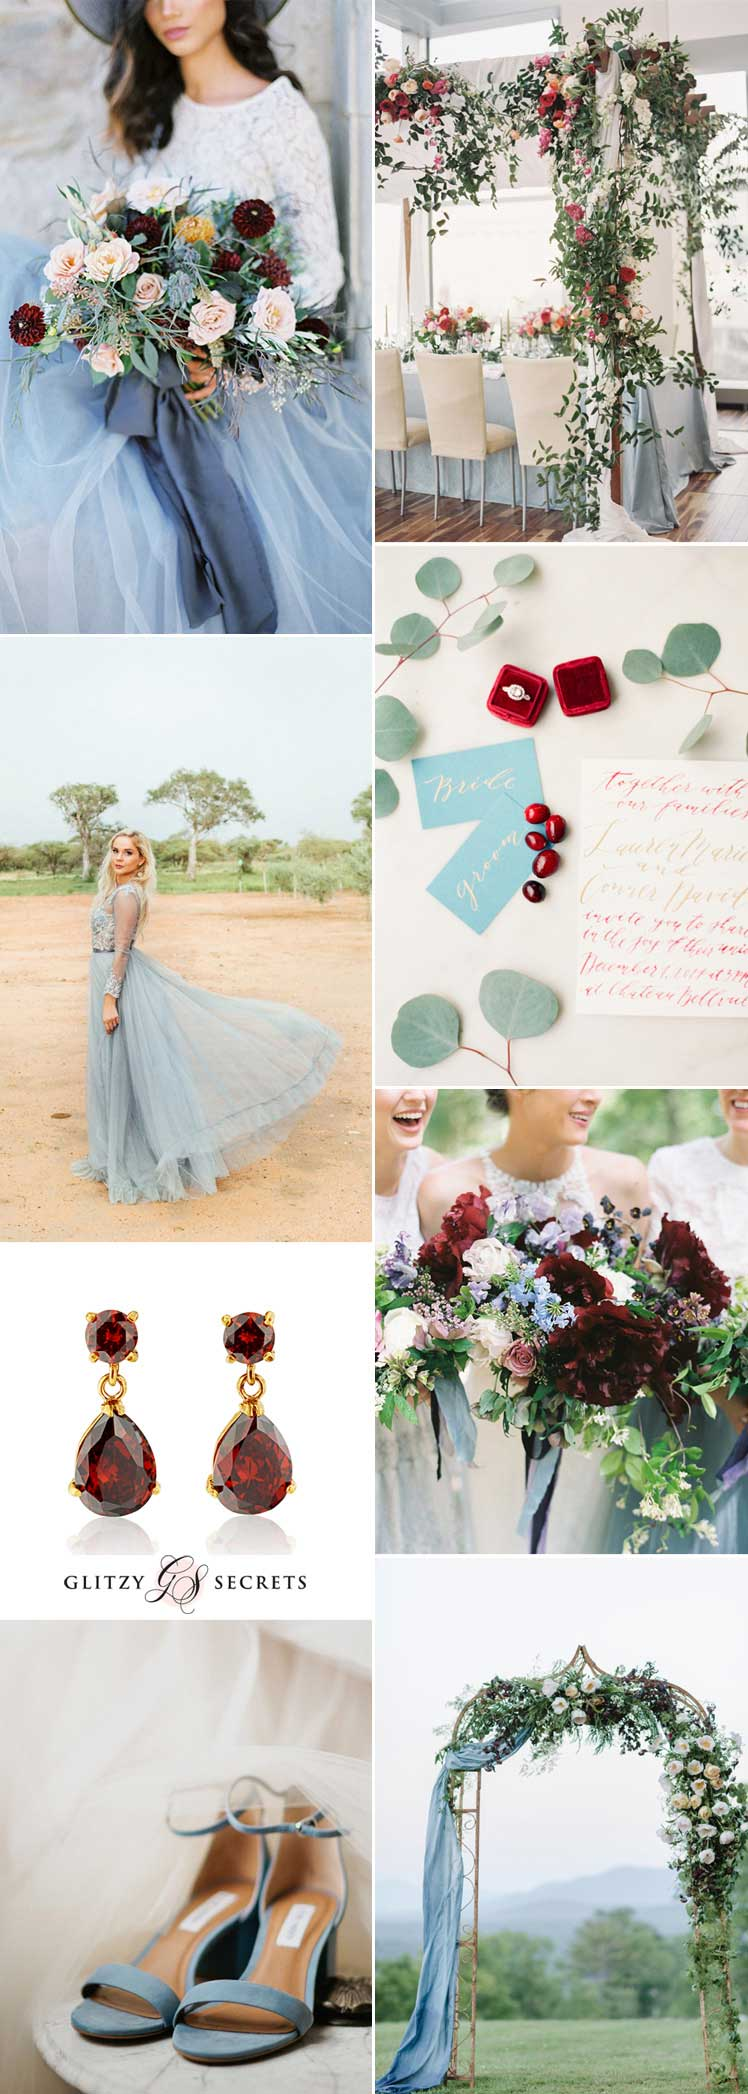 Burgundy and blue wedding colour scheme ideas